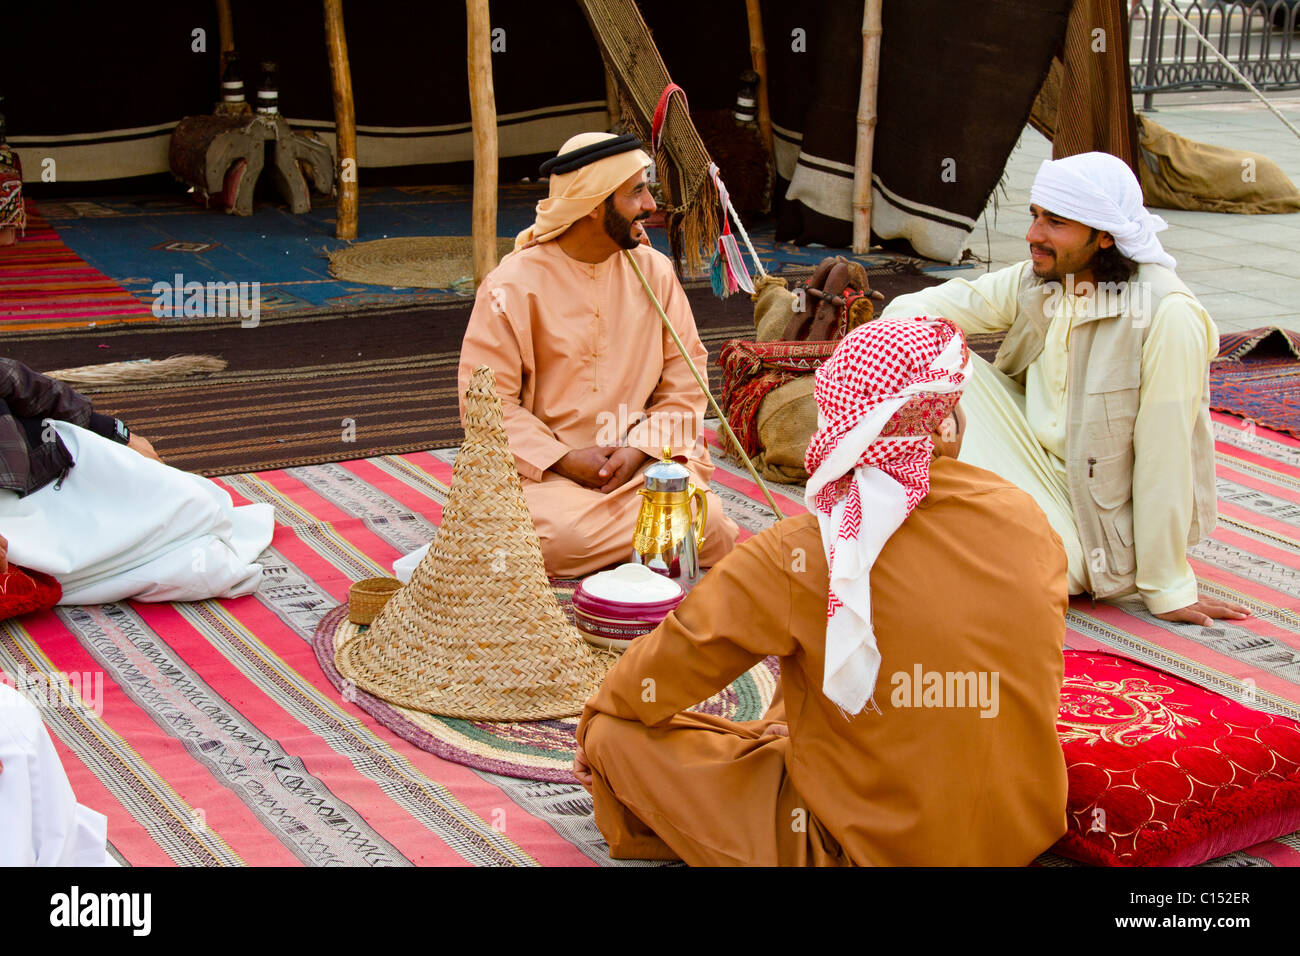 f51b934d1 Arab men in traditional dress at a camp along Dubai Creek in Dubai